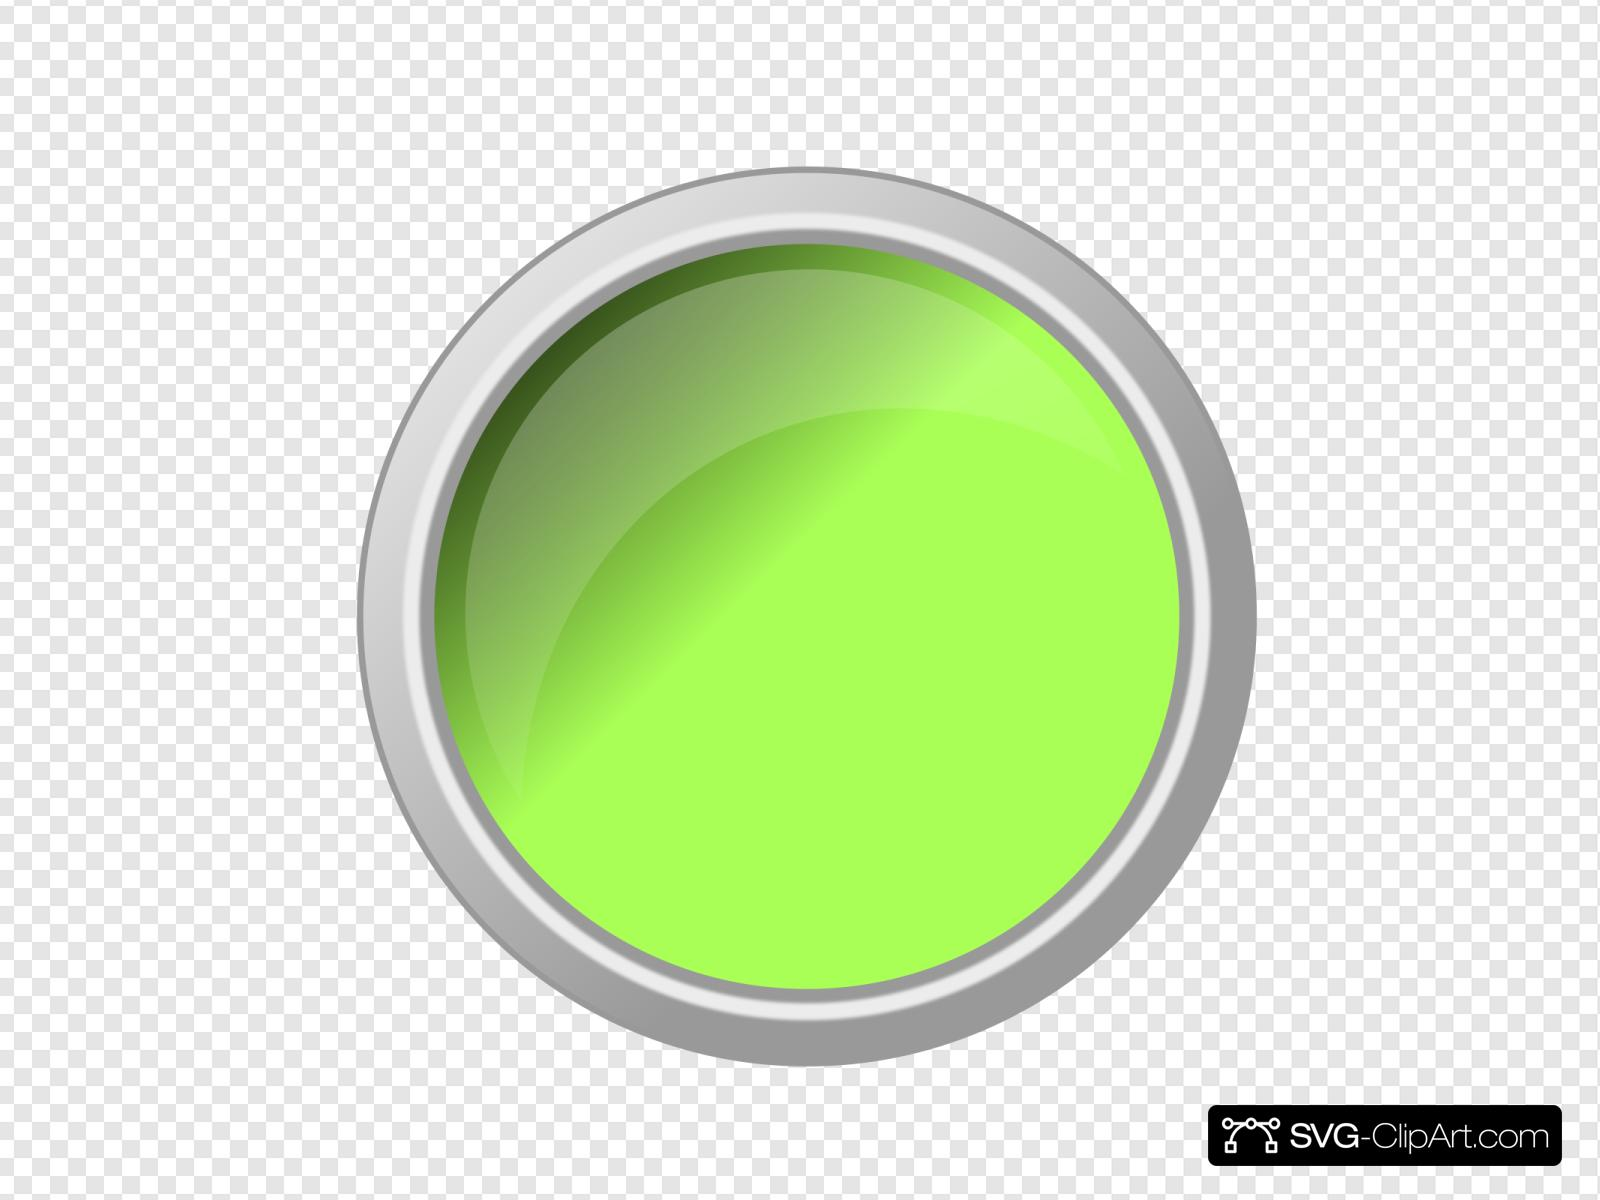 Glossy Green Push Button Clip art, Icon and SVG.